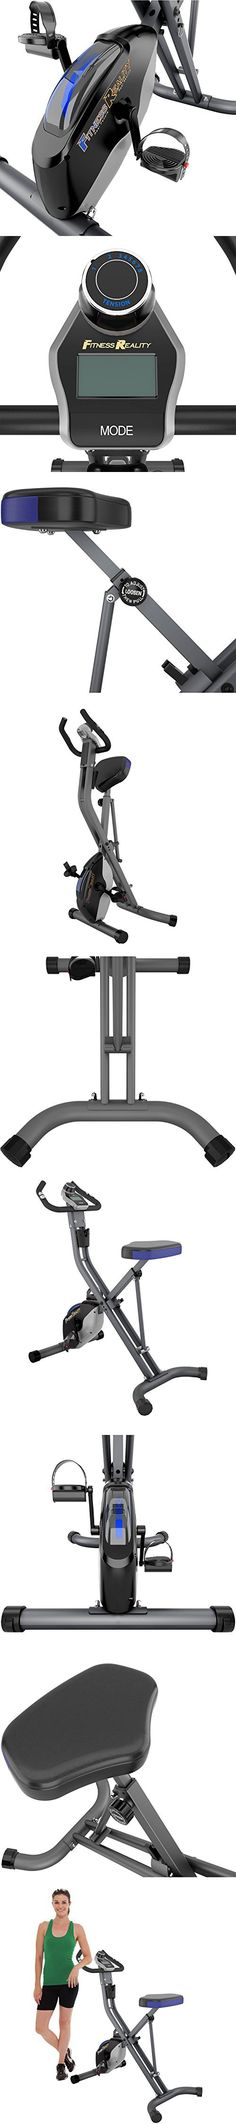 Foldable 400-lb Weight Capacity Upright Stationary Exercise Bike Cycling Heart Pulse Sensors Magnetic Tension Control Home Gym Cardio Training Fitness Workout Equipment Machine Leg Muscle Weight Loss